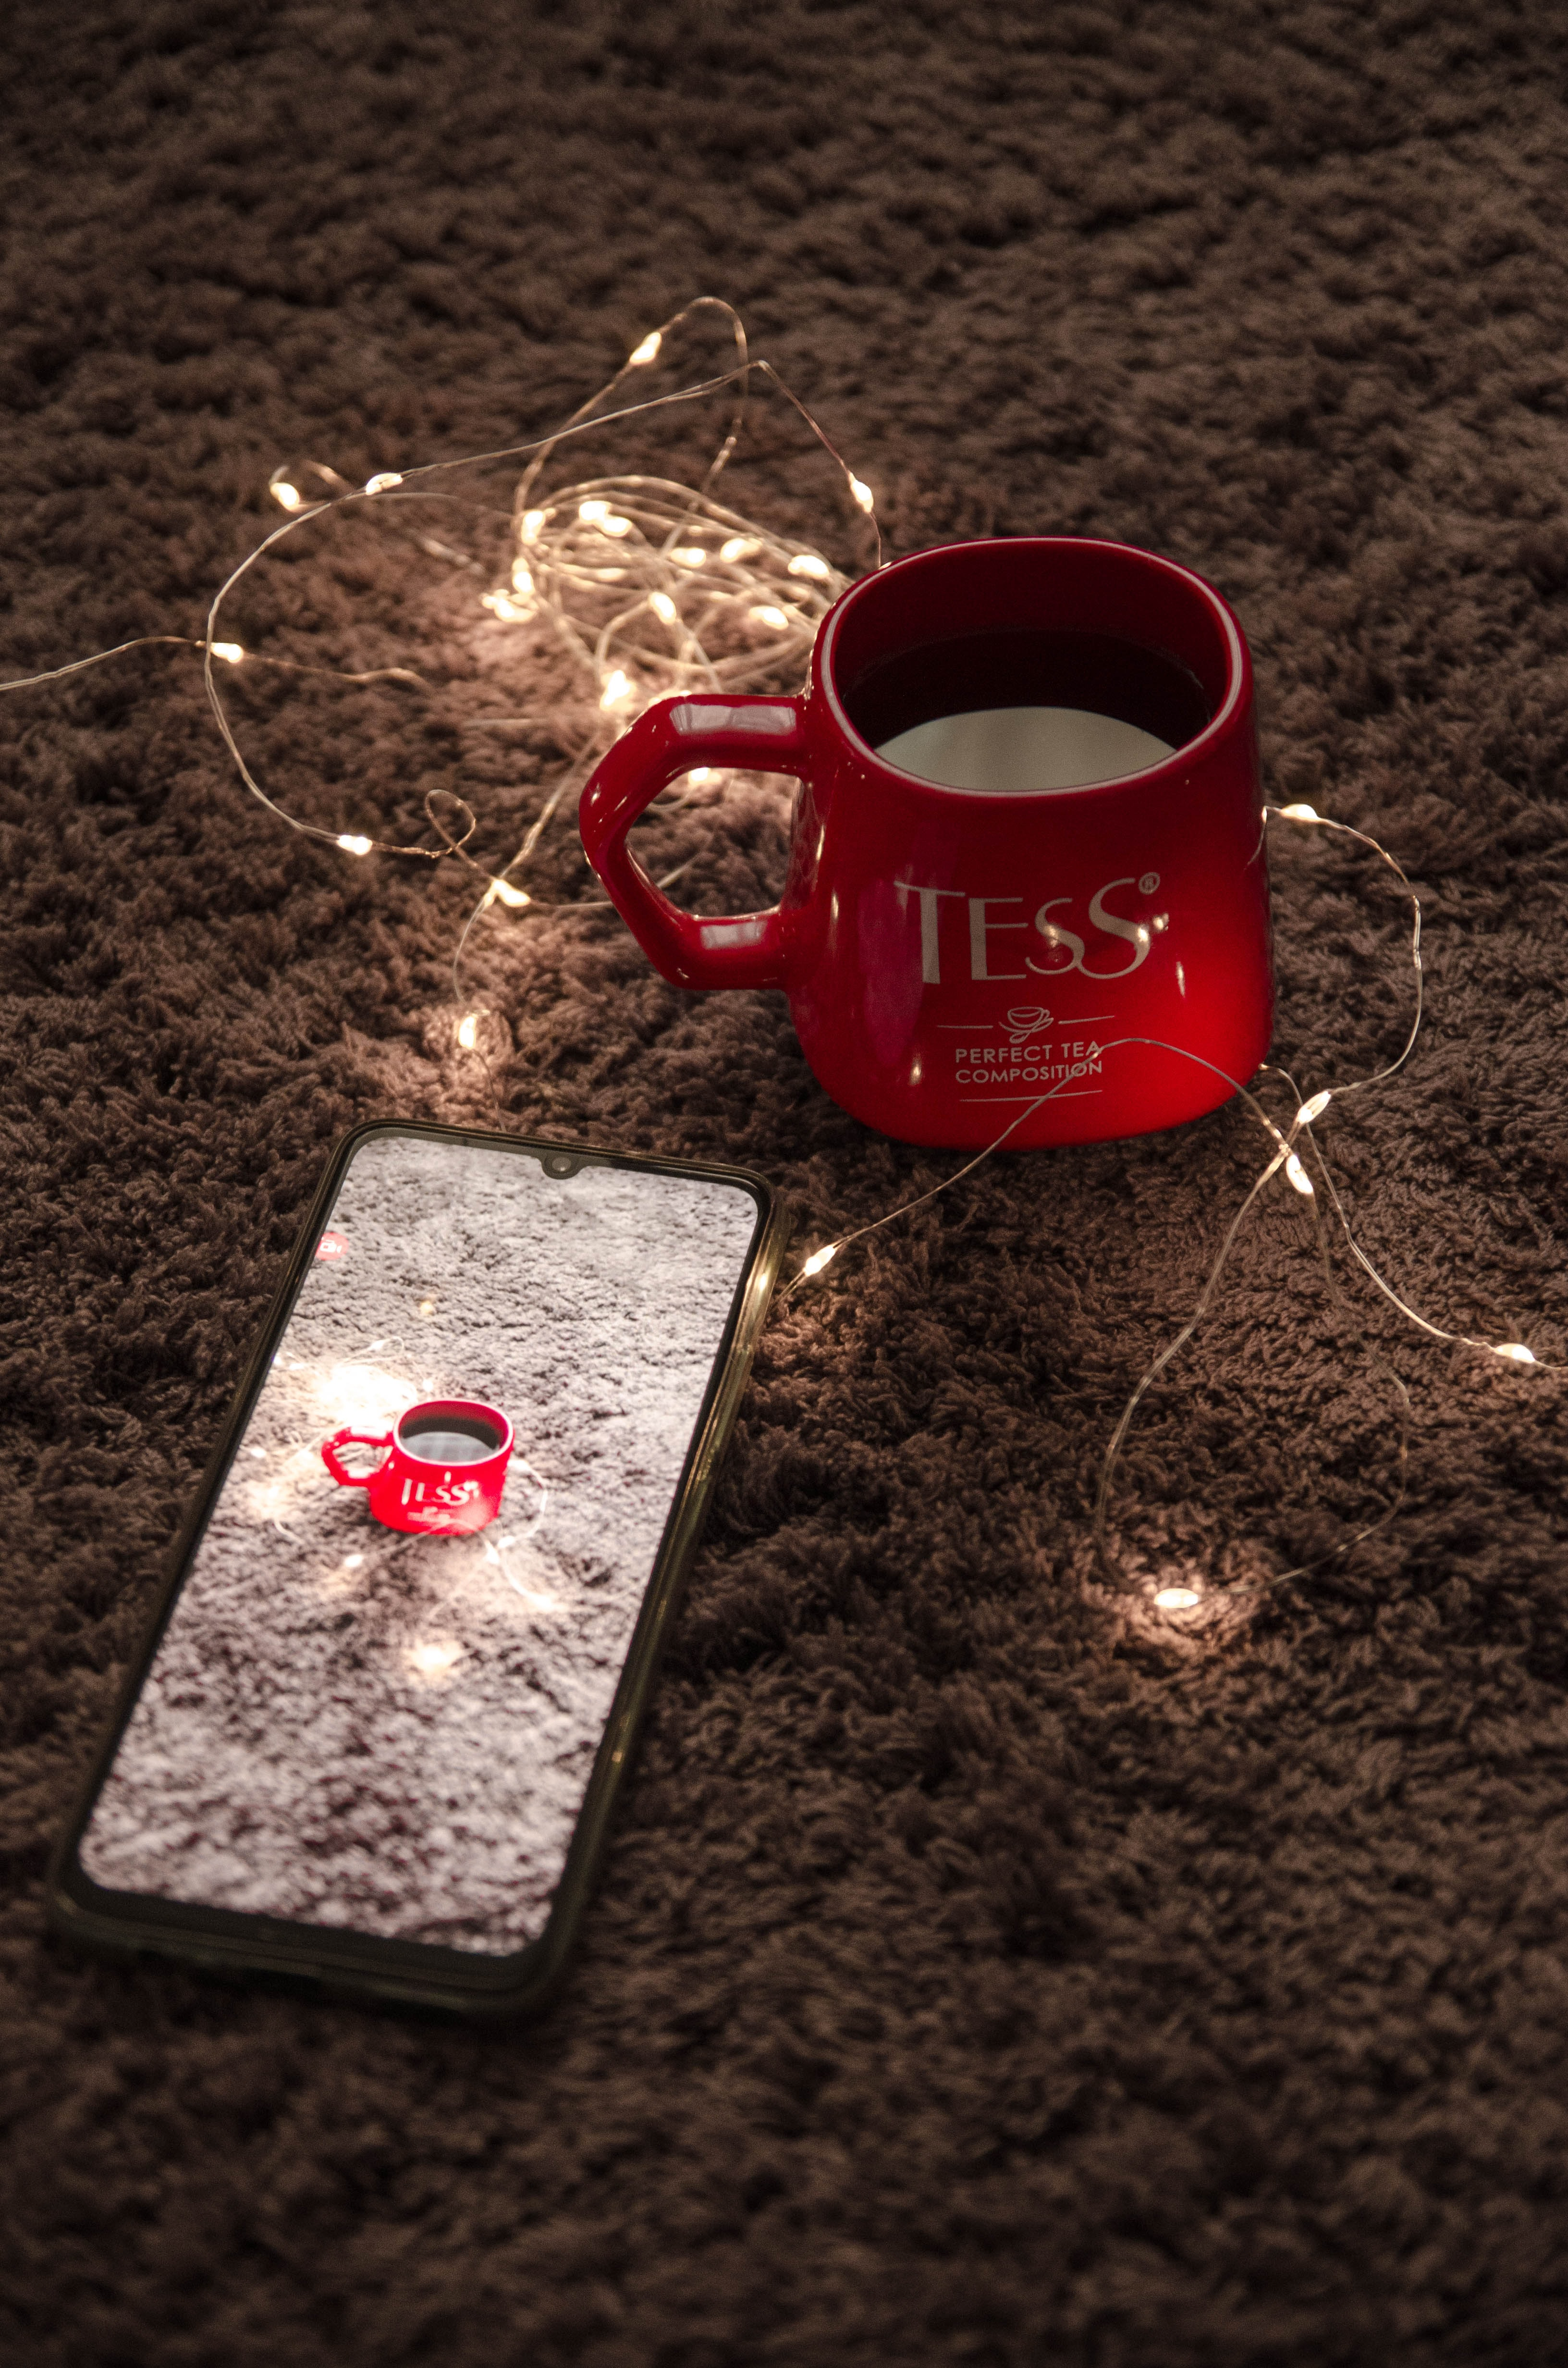 125937 Screensavers and Wallpapers Cup for phone. Download Miscellanea, Miscellaneous, Cup, Garland, Telephone, Mug pictures for free